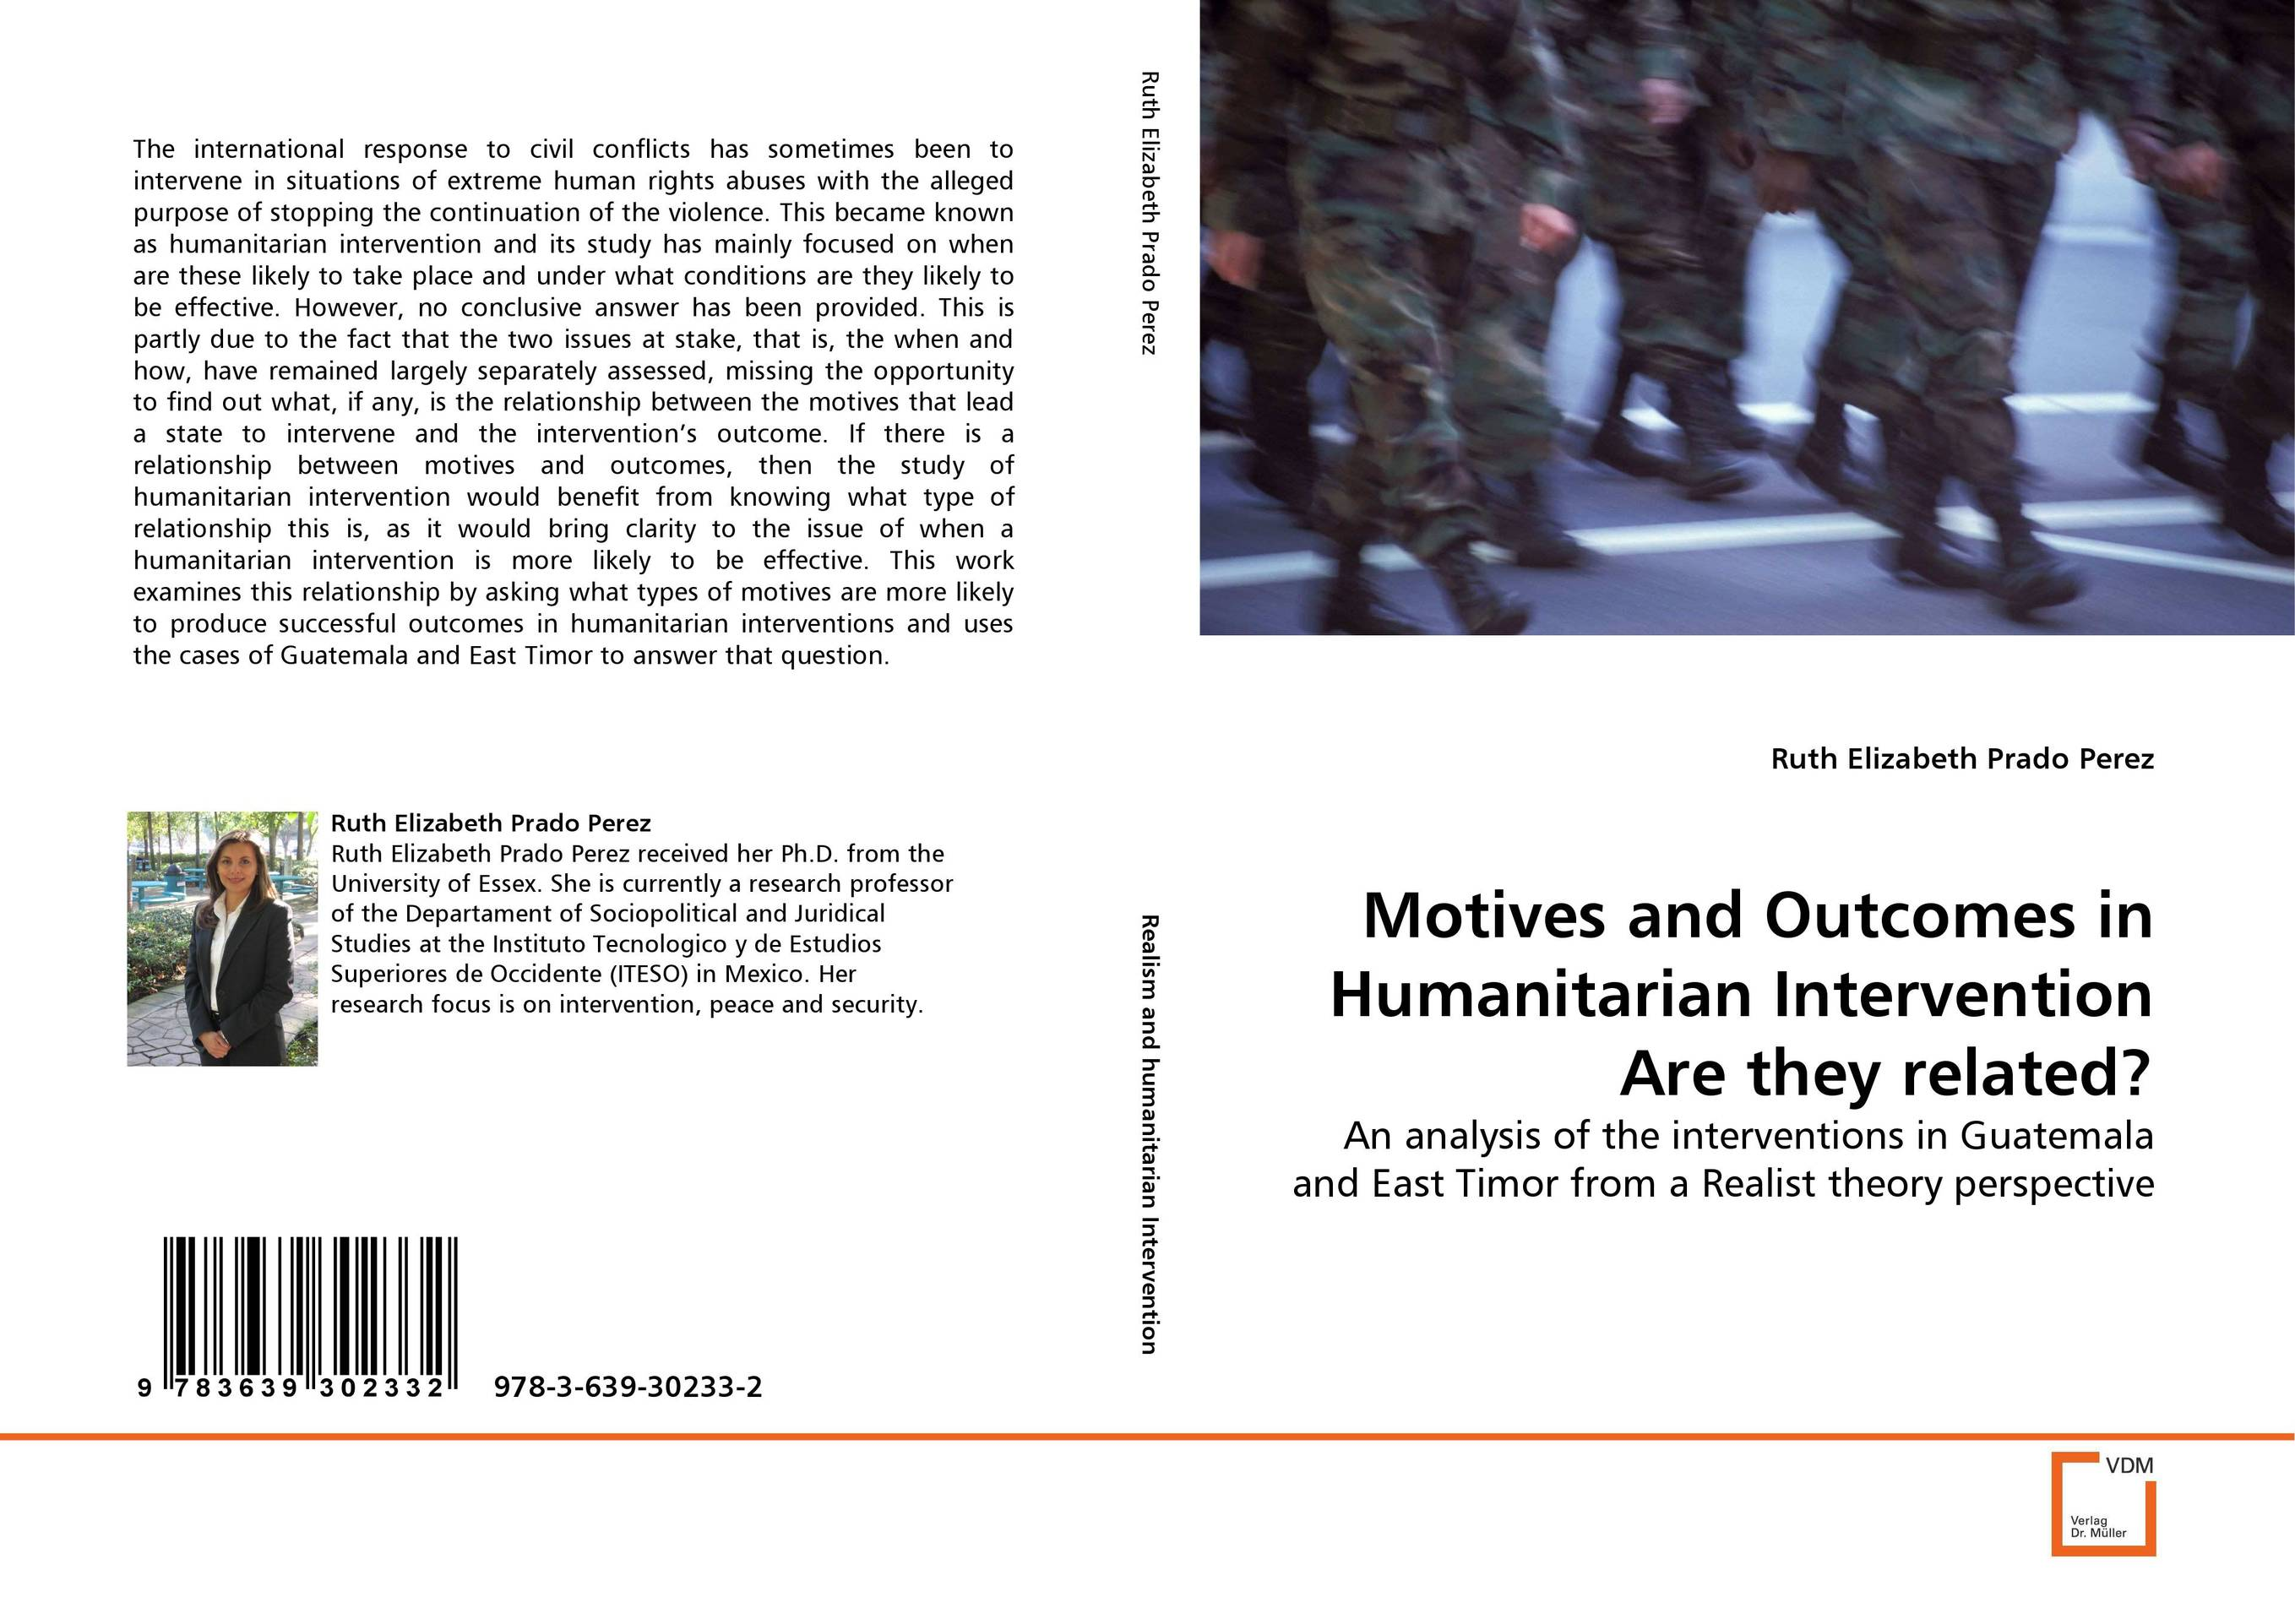 Motives and Outcomes in Humanitarian Intervention Are they related? oliver ramsbotham humanitarian intervention in contemporary conflict